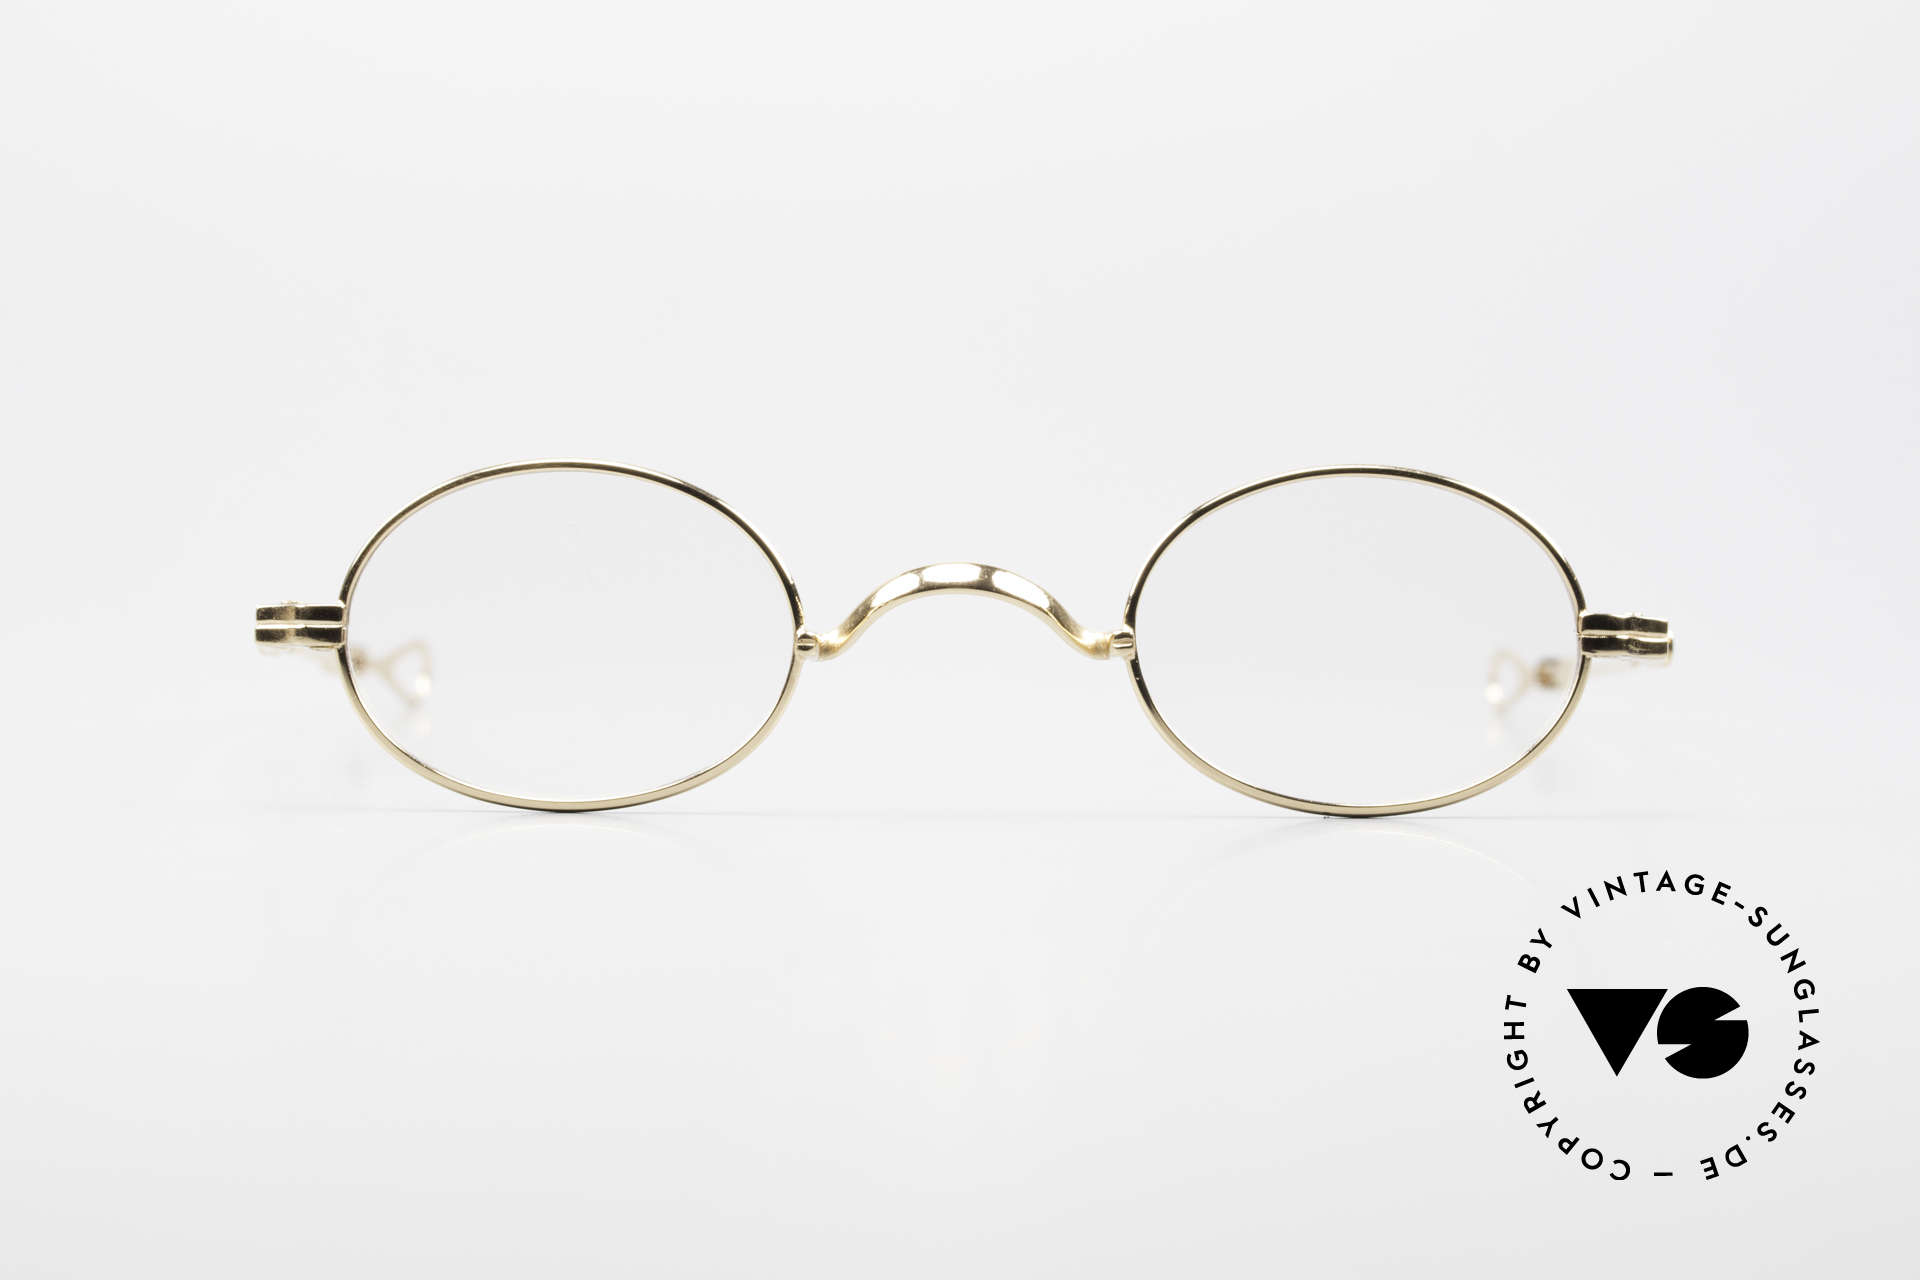 Lunor I 04 Telescopic XS Gold Glasses Slide Temples, Lunor: timeless classics, YELLOW GOLD, made in Germany, Made for Men and Women